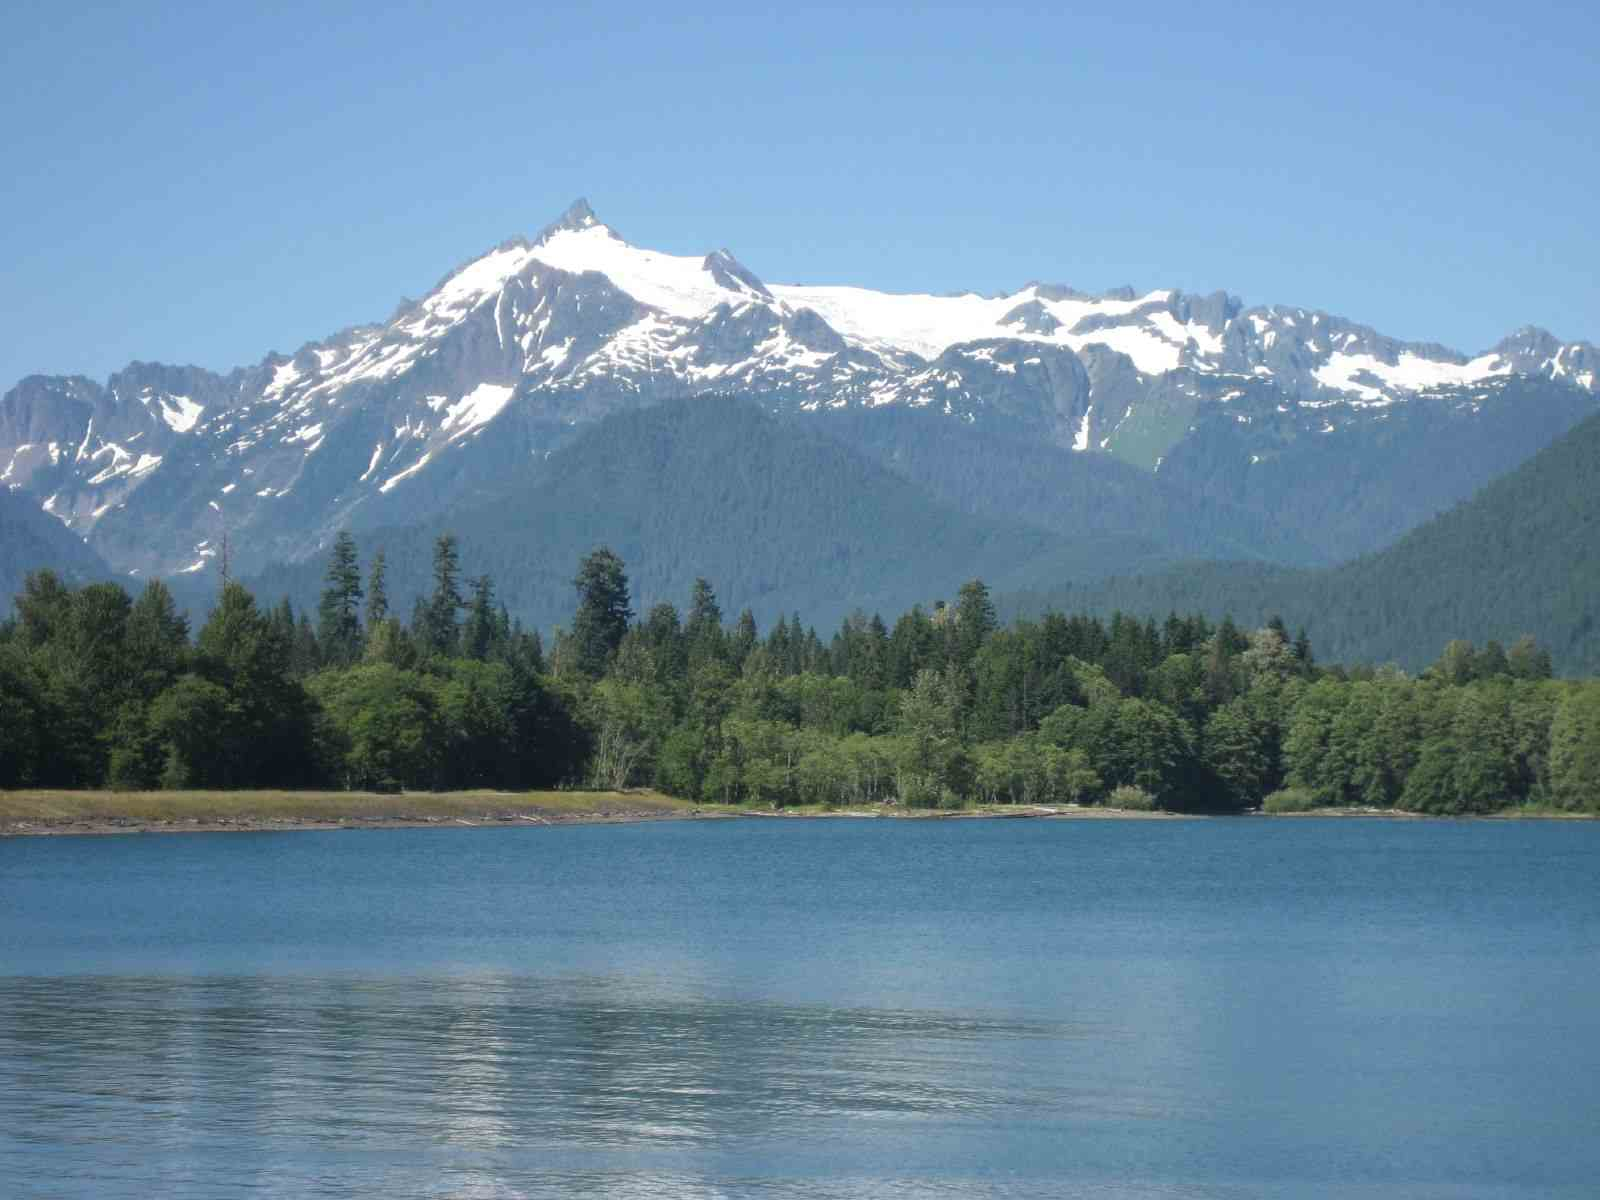 Baker Lake in western Washington